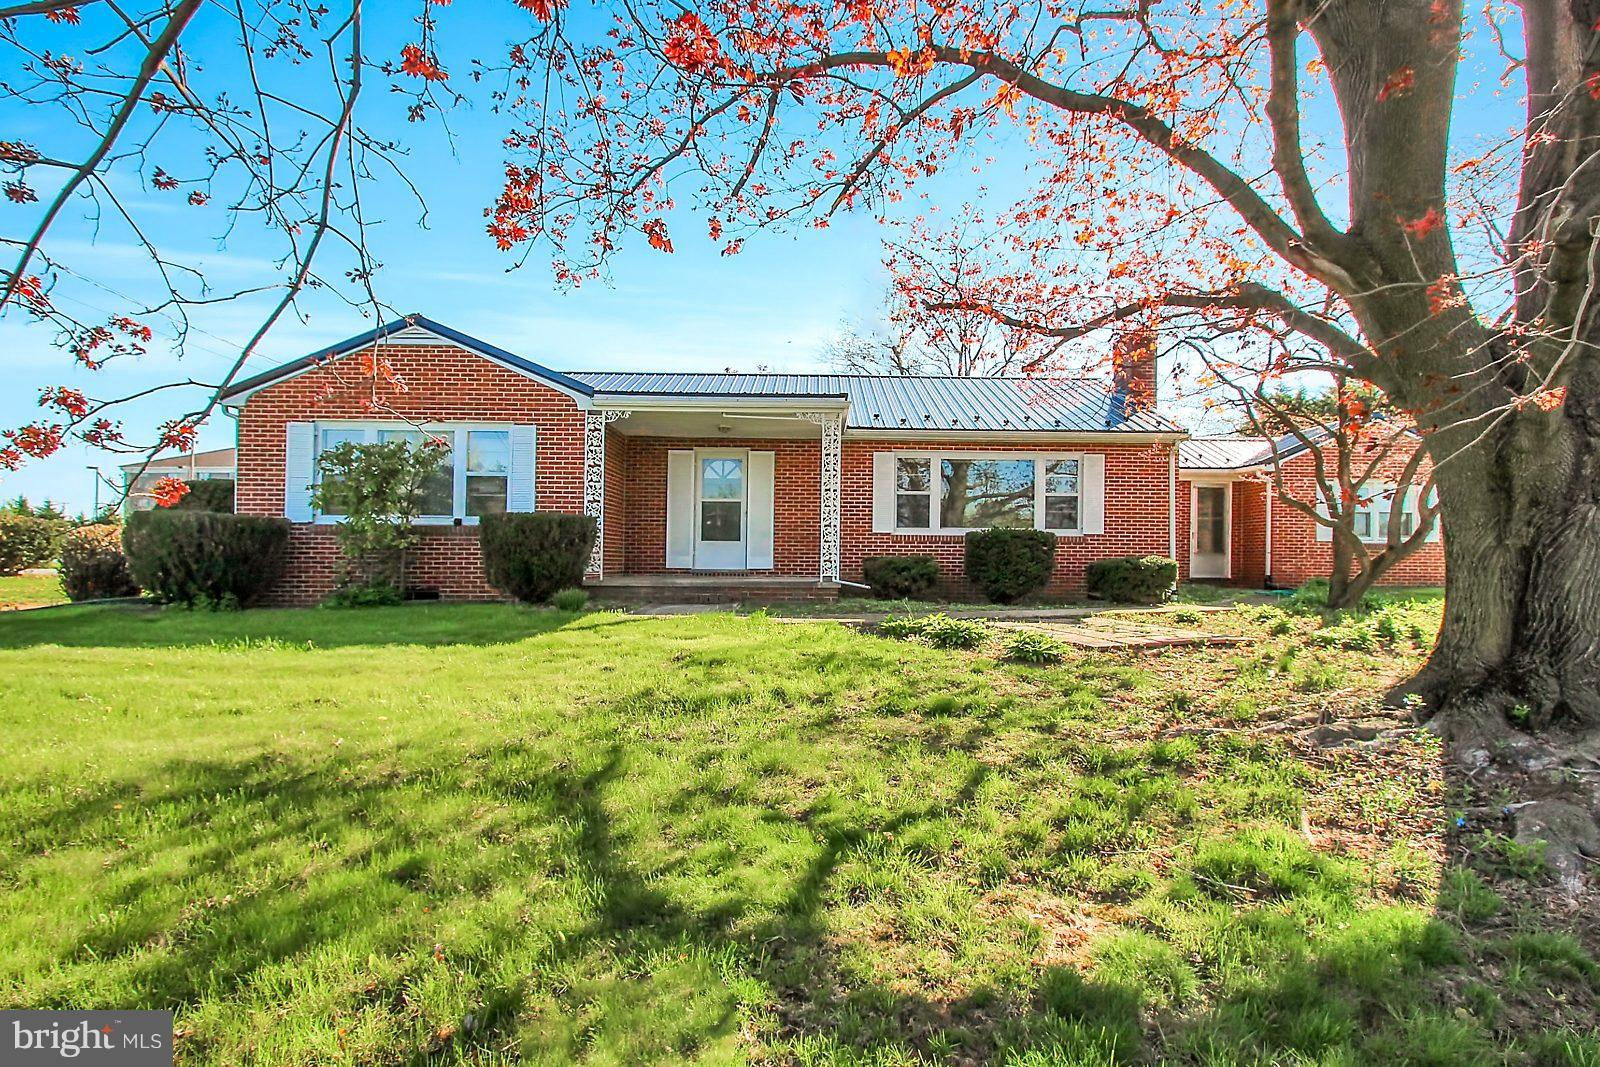 12414 HOUCK AVENUE, CLEAR SPRING, MD 21722